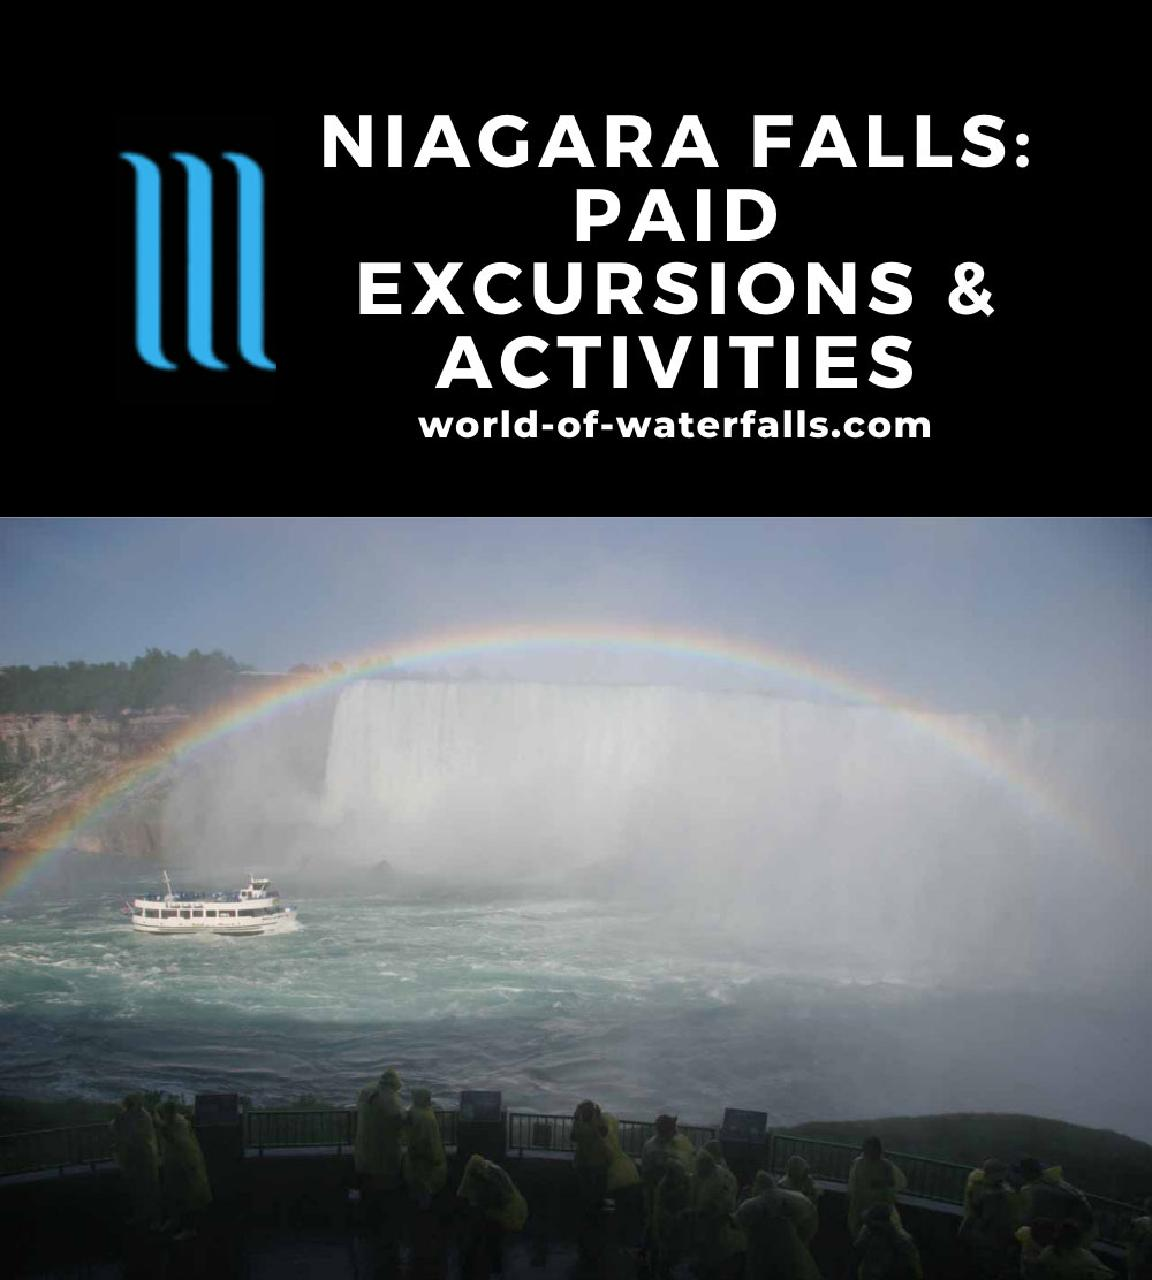 Niagara Falls: Paid Excursions and Activities